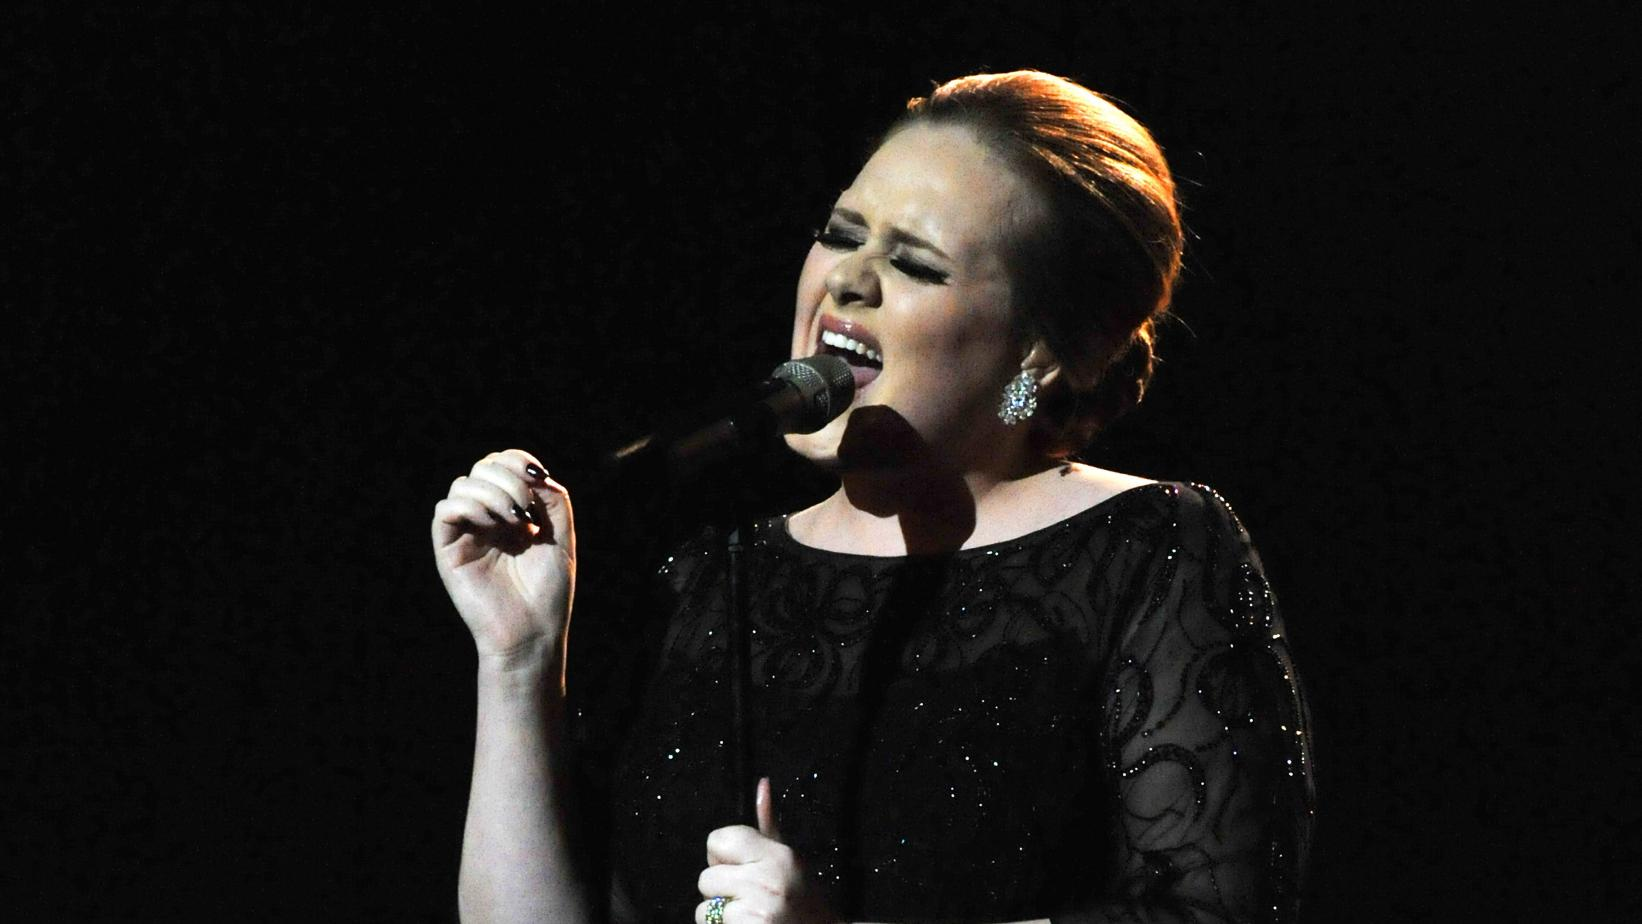 Adele, GRAMMY winner